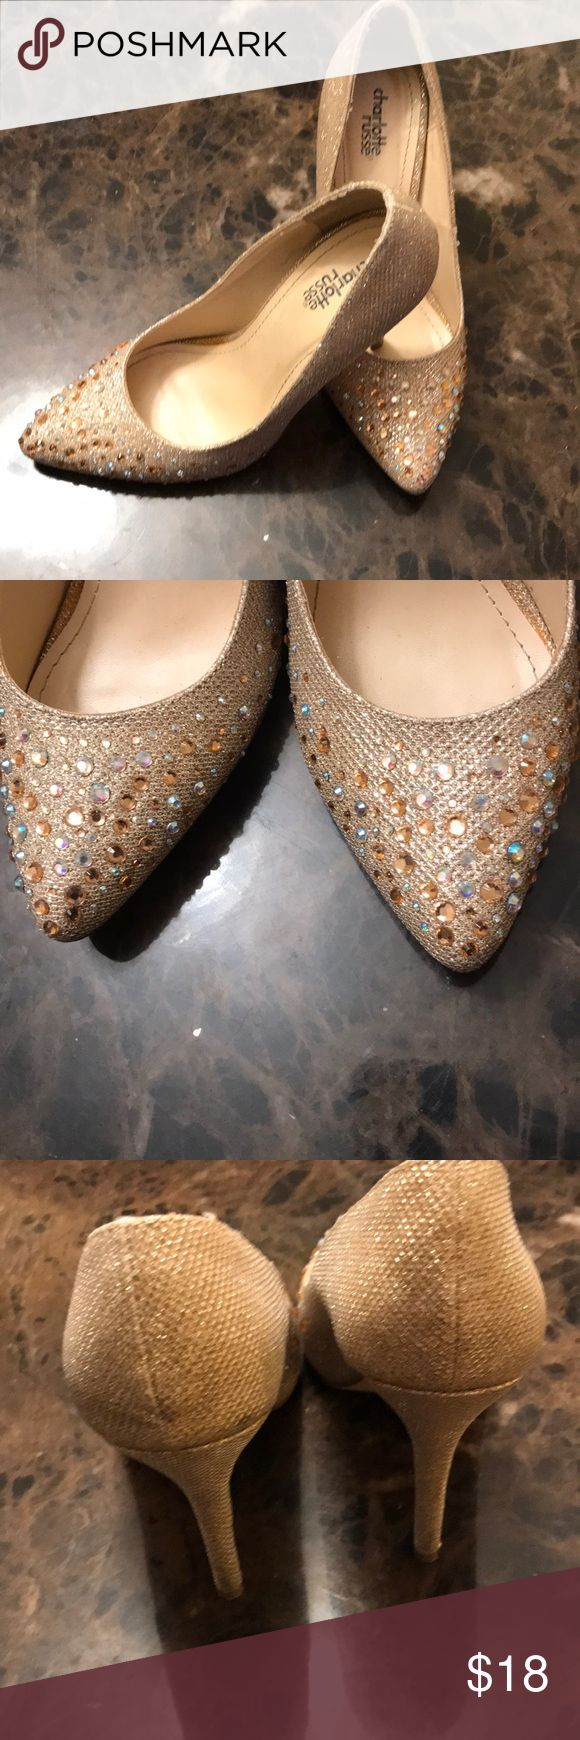 Sparkly Gold Heels Size 7 Charlotte Russe Sparkly Gold Heels Size 7. Only worn one time. Wore them with a black and gold dress for New Years! Would be really cute with a prom dress or Homecoming. Charlotte Russe Shoes Heels #promheelsgold #promheelssparkly